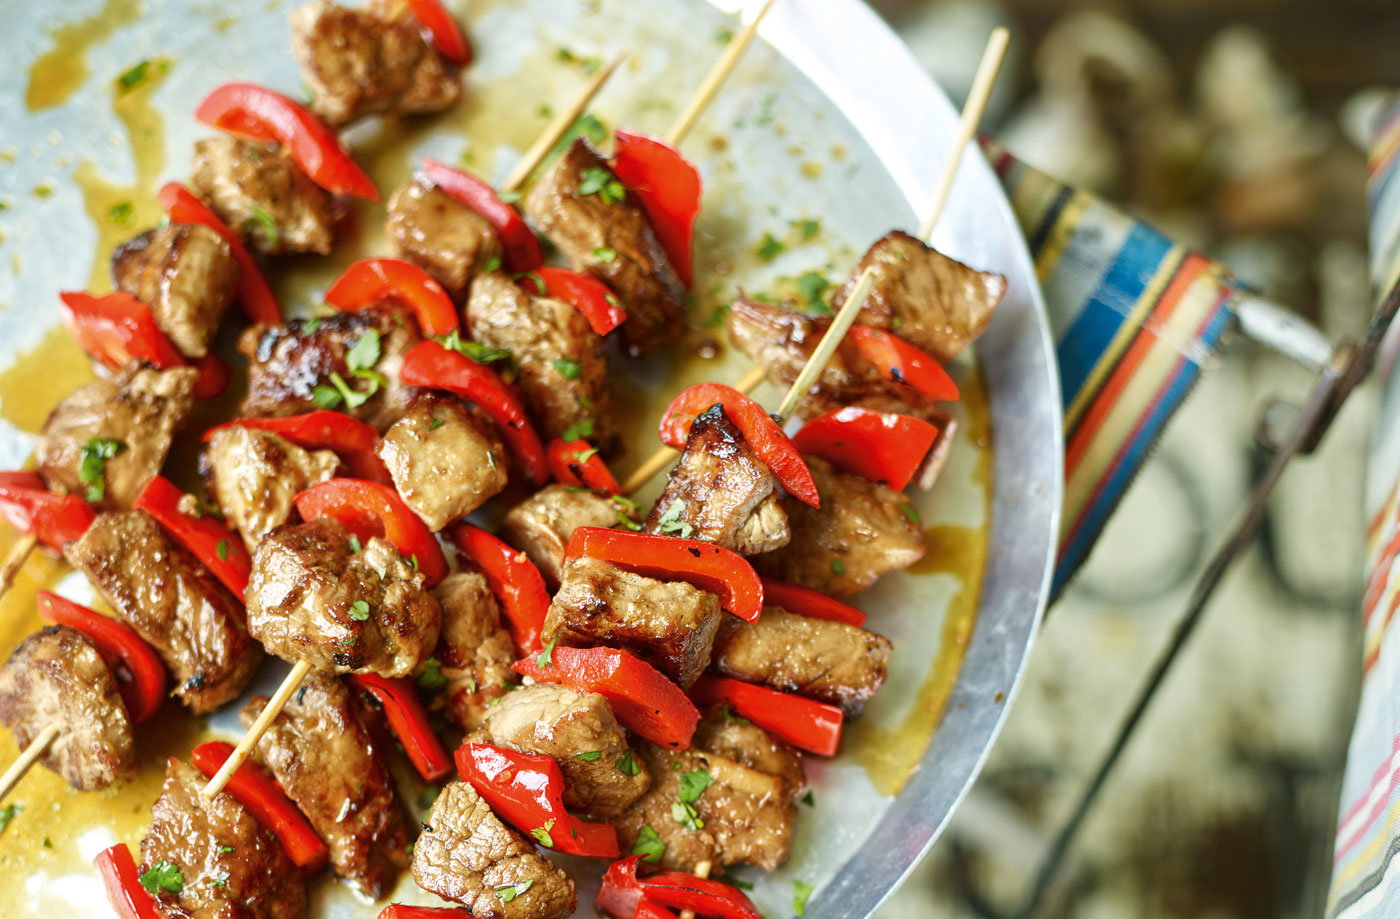 Korean pork skewers recipe